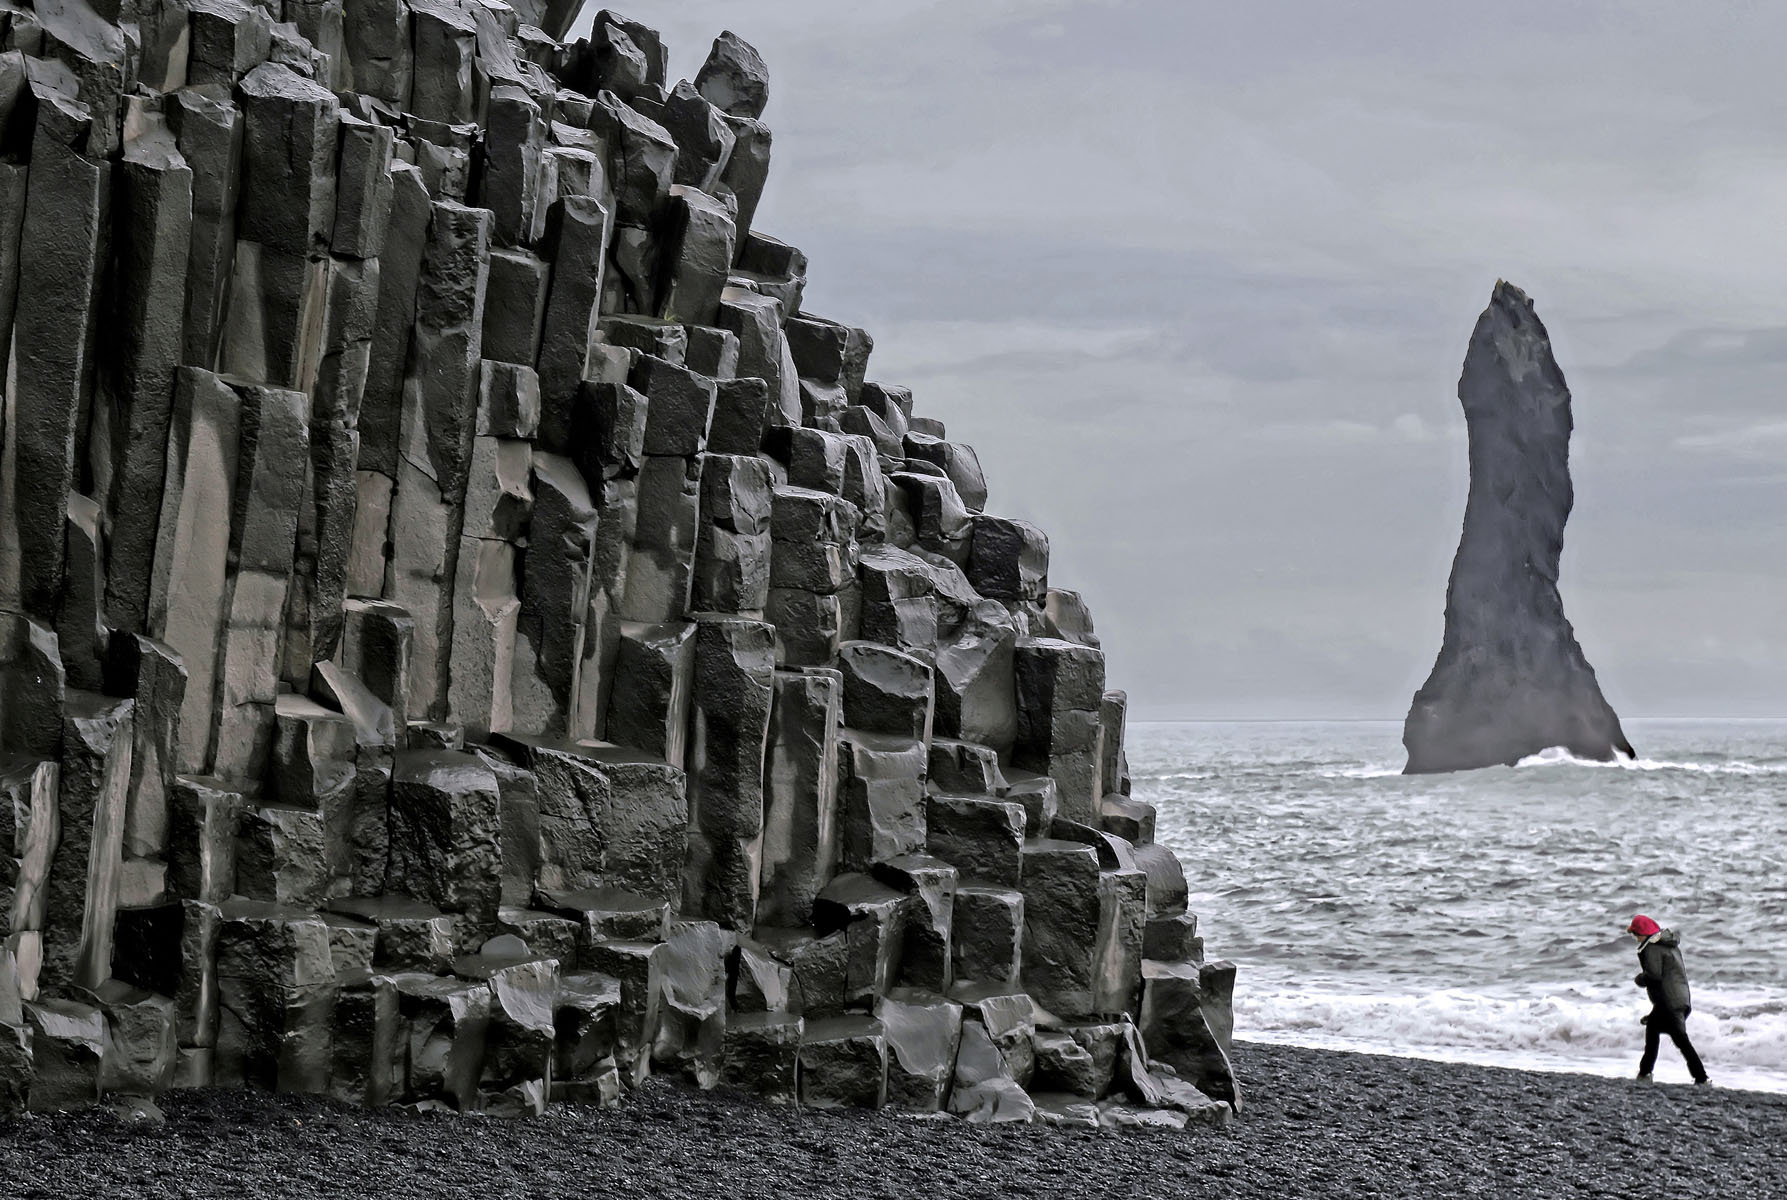 """Vik, Iceland, September 2014   Archival pigment print  11.25"""" x 16.75""""  $300  Click image to enlarge   Inquire."""